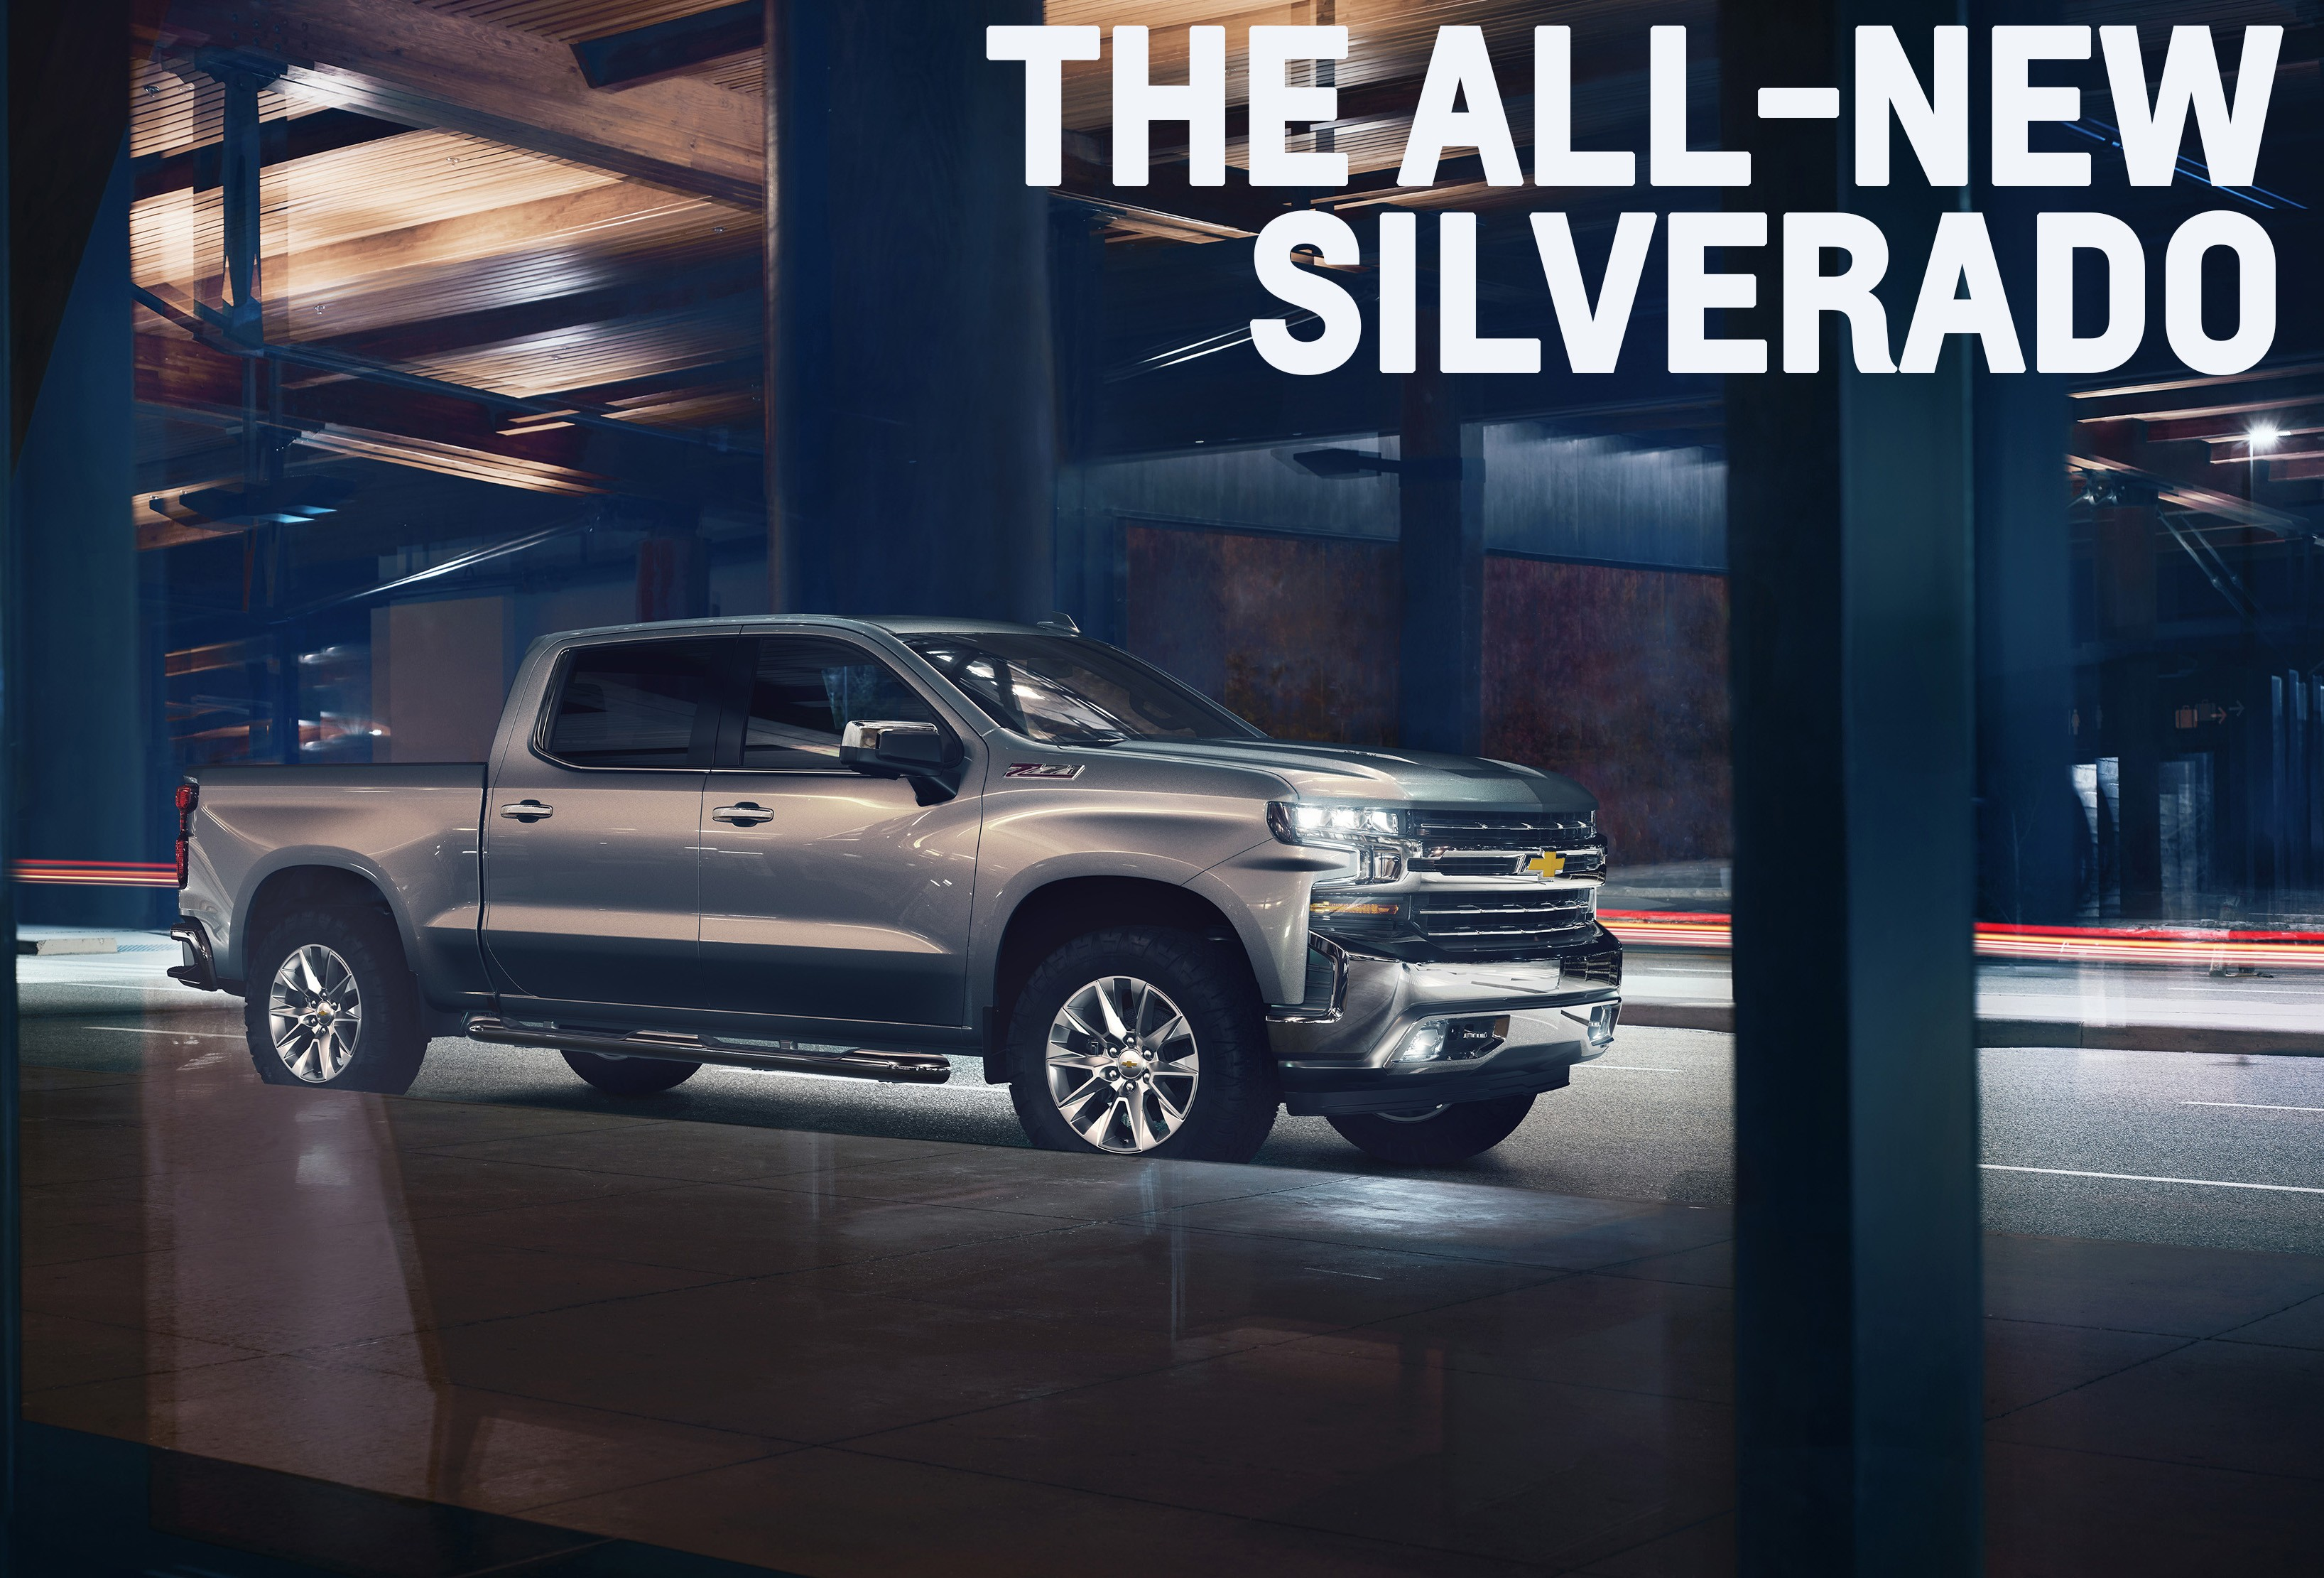 Lifted Chevy Silverado >> 2019 Chevy Silverado Trim Levels - All The Details You Need!